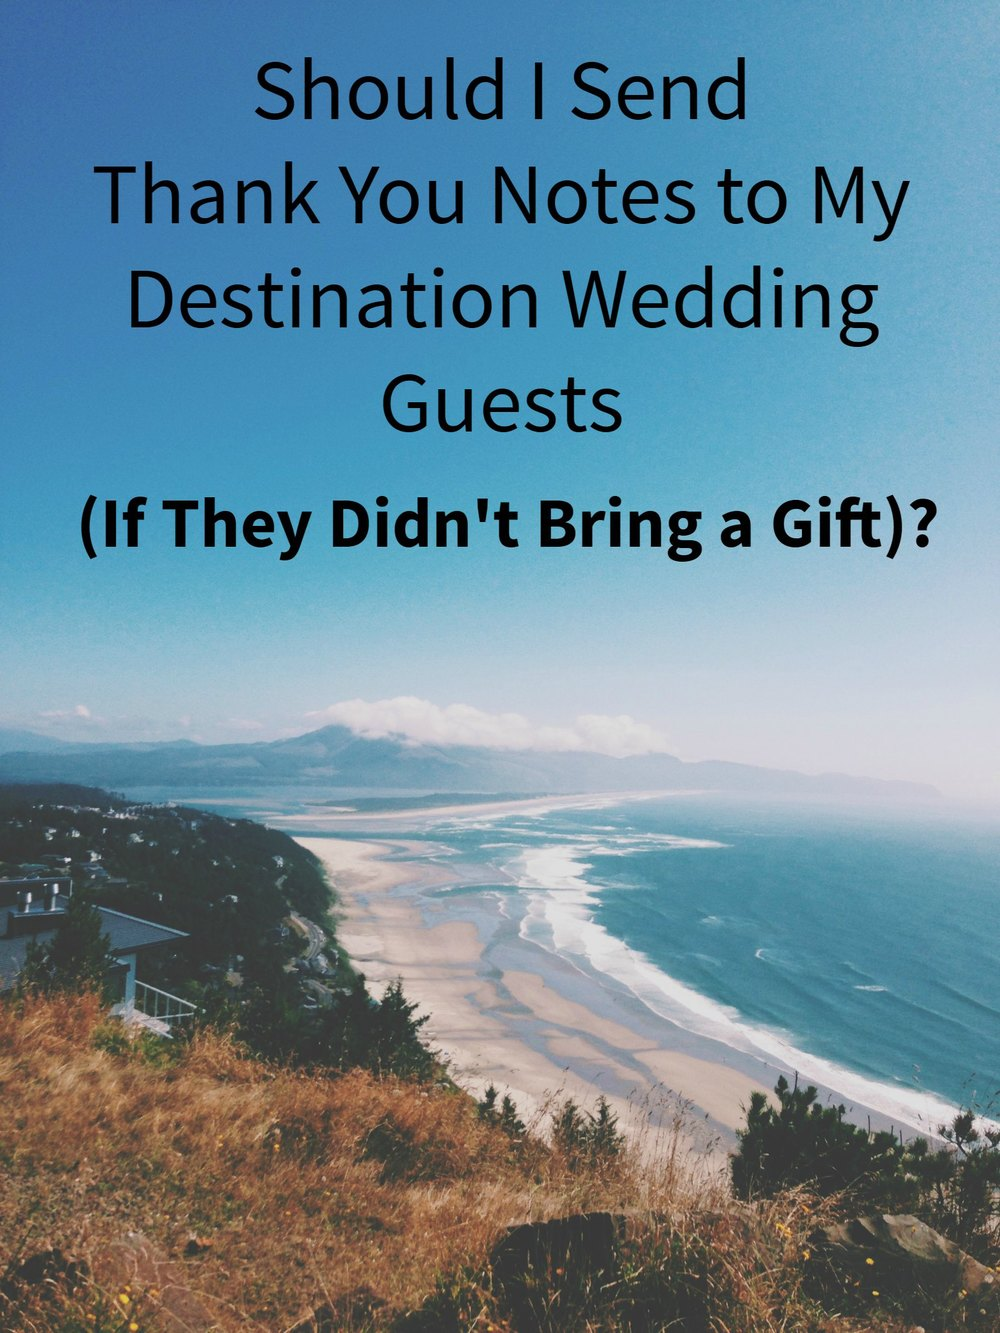 Should You Send Thank You Notes to Your Destination Wedding Guests Even if They Didn't Bring a Gift? #wedding - Paper Swallow Events